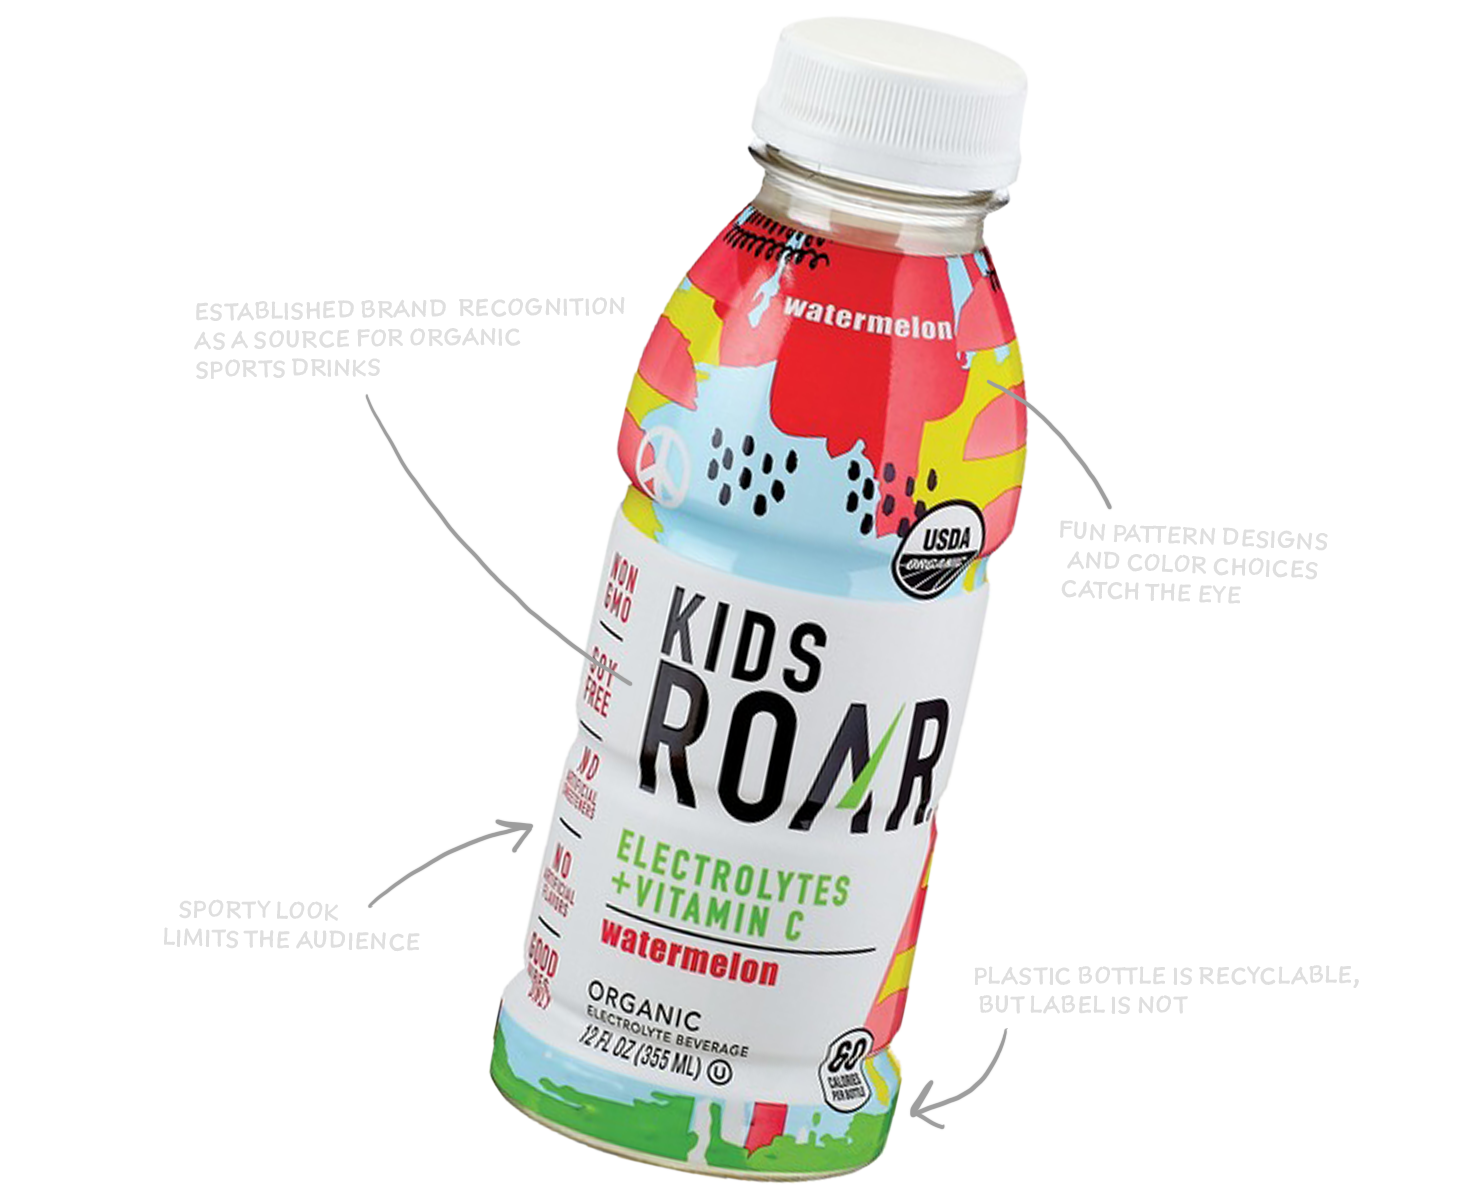 An analysis of Roar Drinks beverage packaging showing strengths and weaknesses